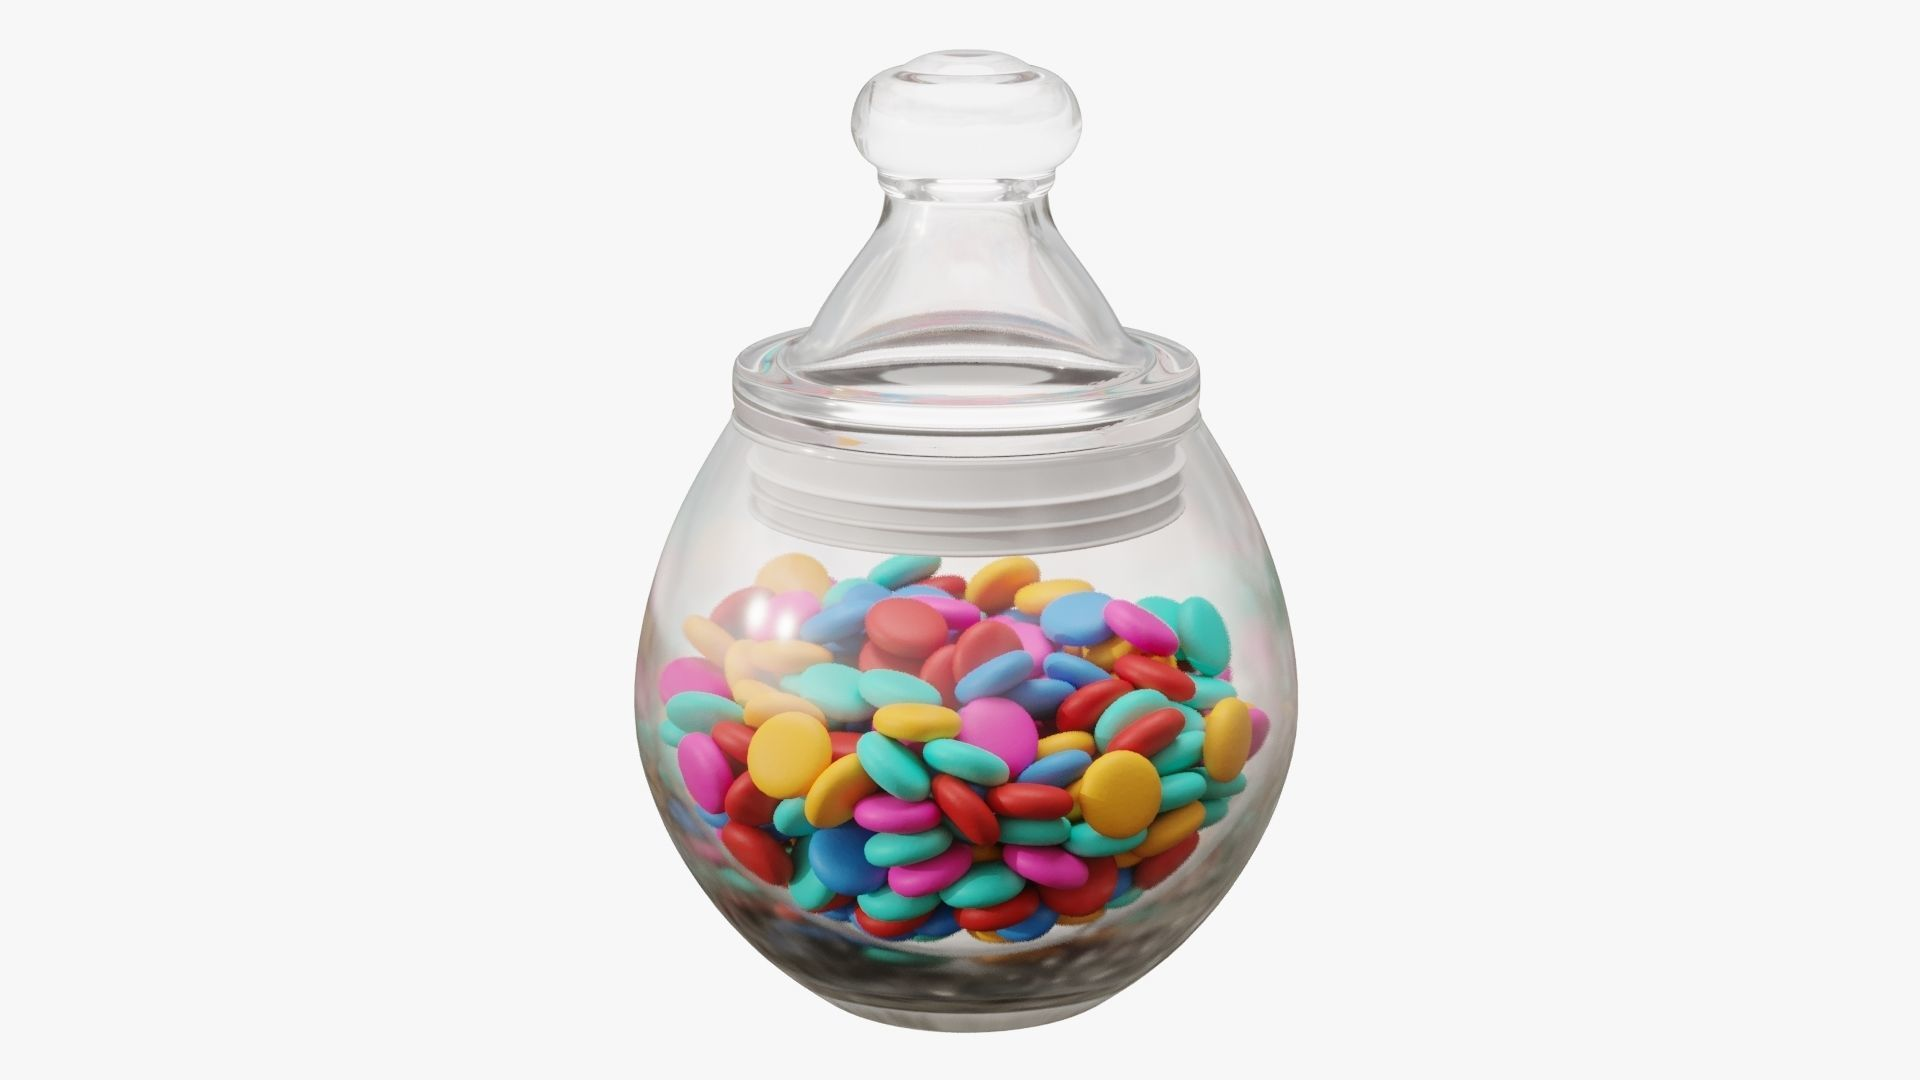 Candies in the jar